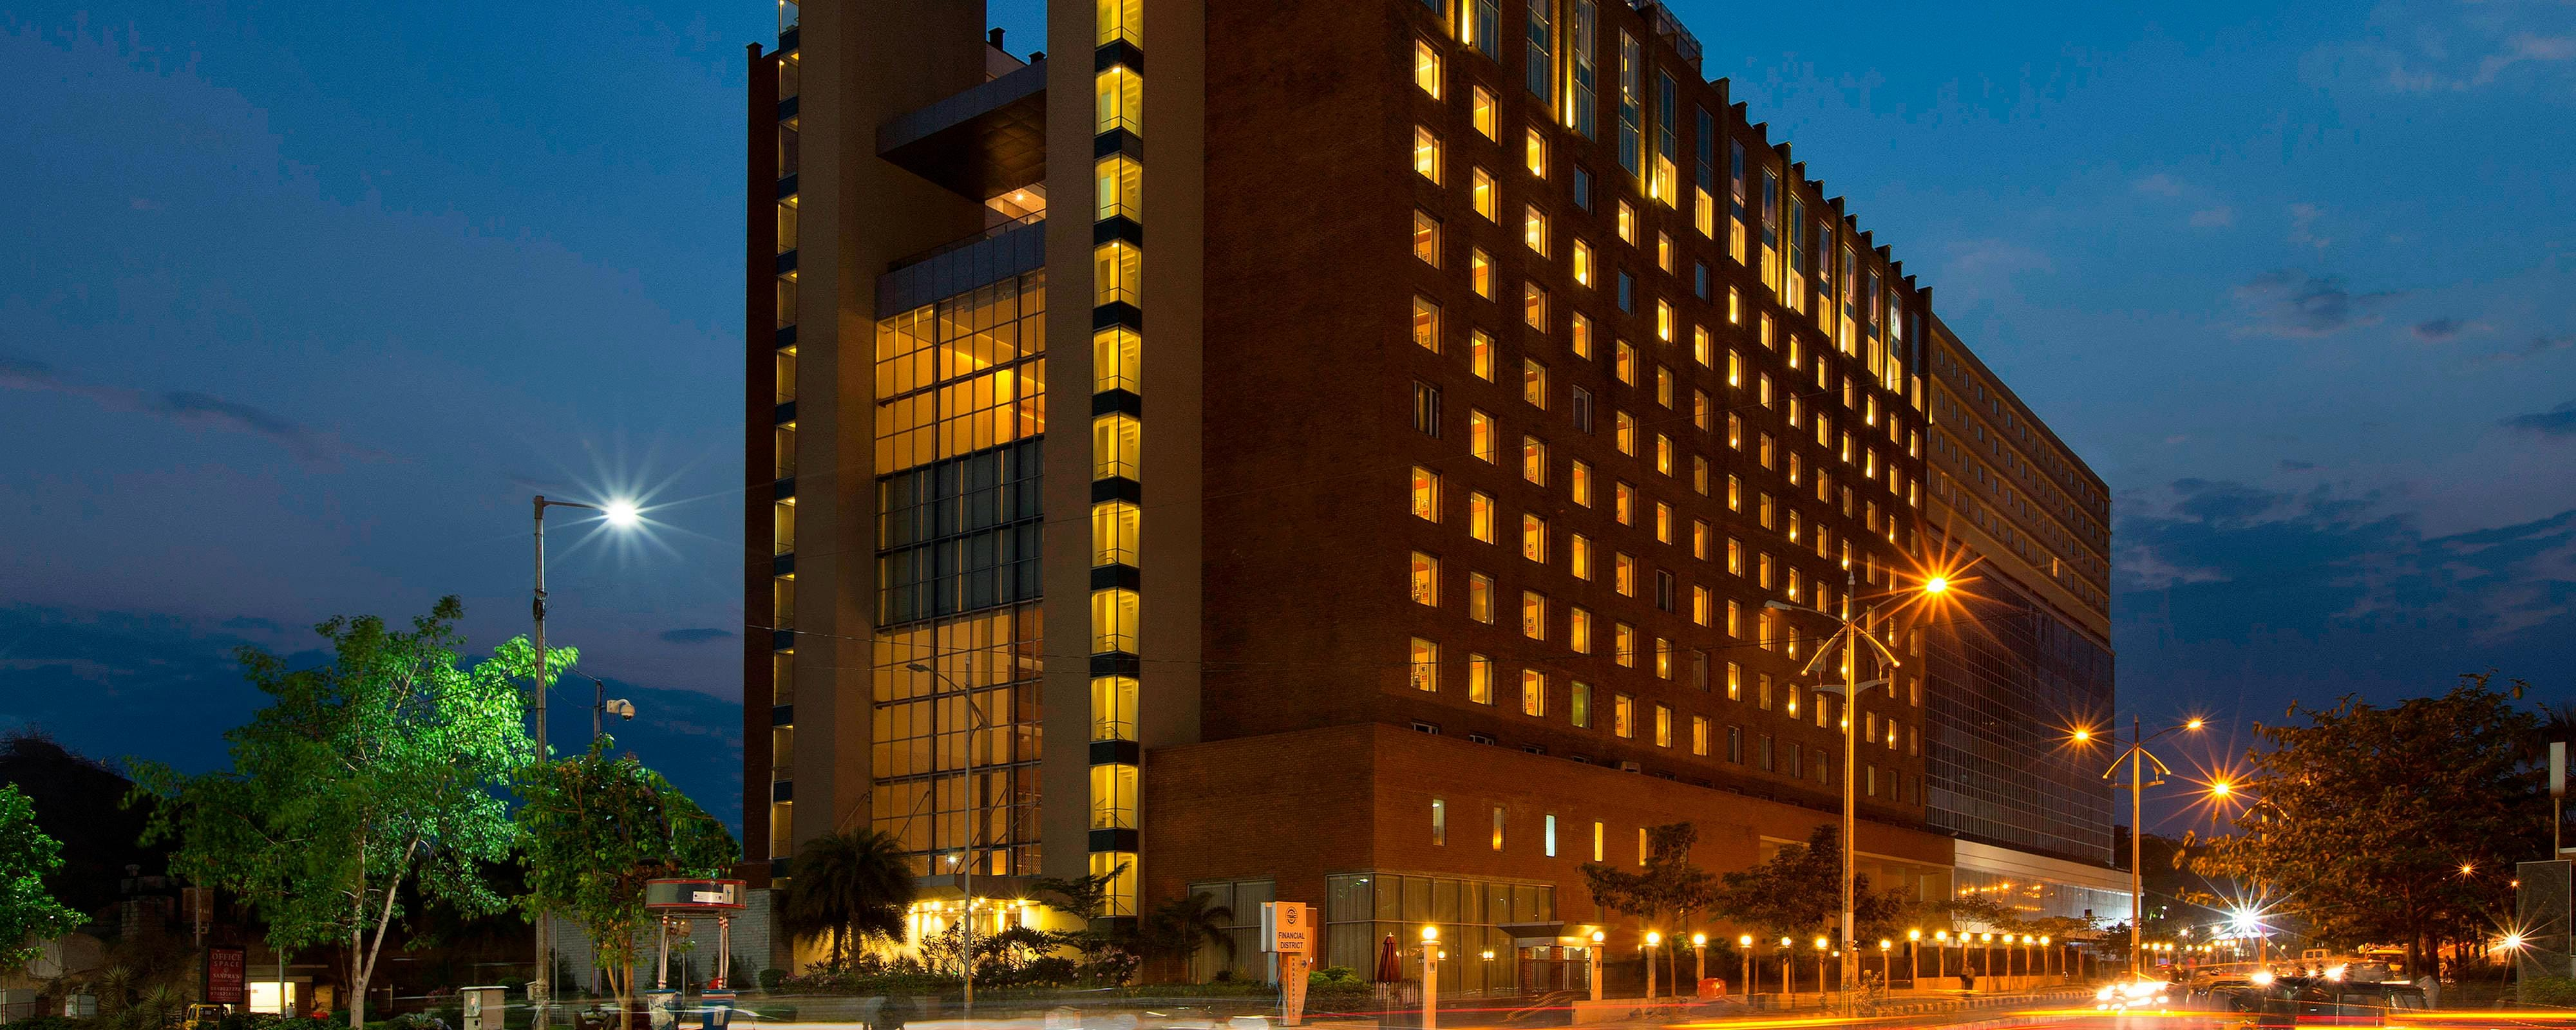 Marriott Bett Sheraton Hyderabad Hotel - Hyderabad | Marriott Bonvoy